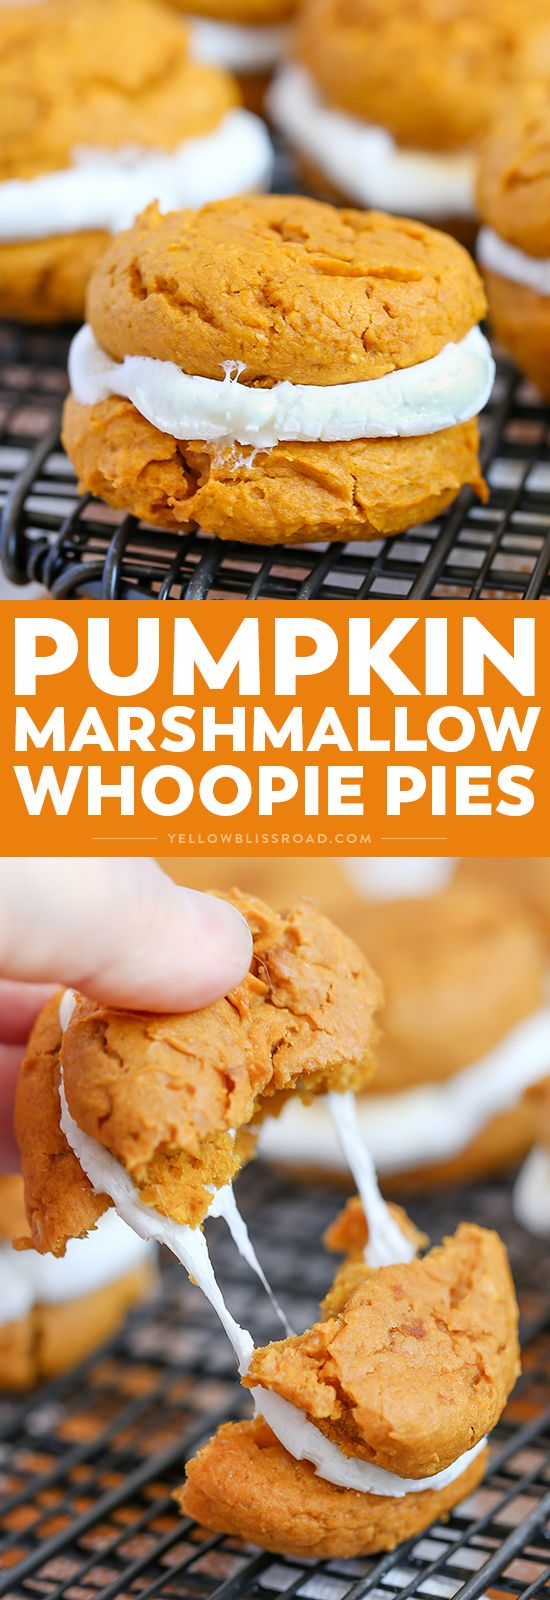 Pumpkin Cookie & Marshmallow Whoopie Pies are a delicious and easy fall dessert - put them at the top of your fall baking list!